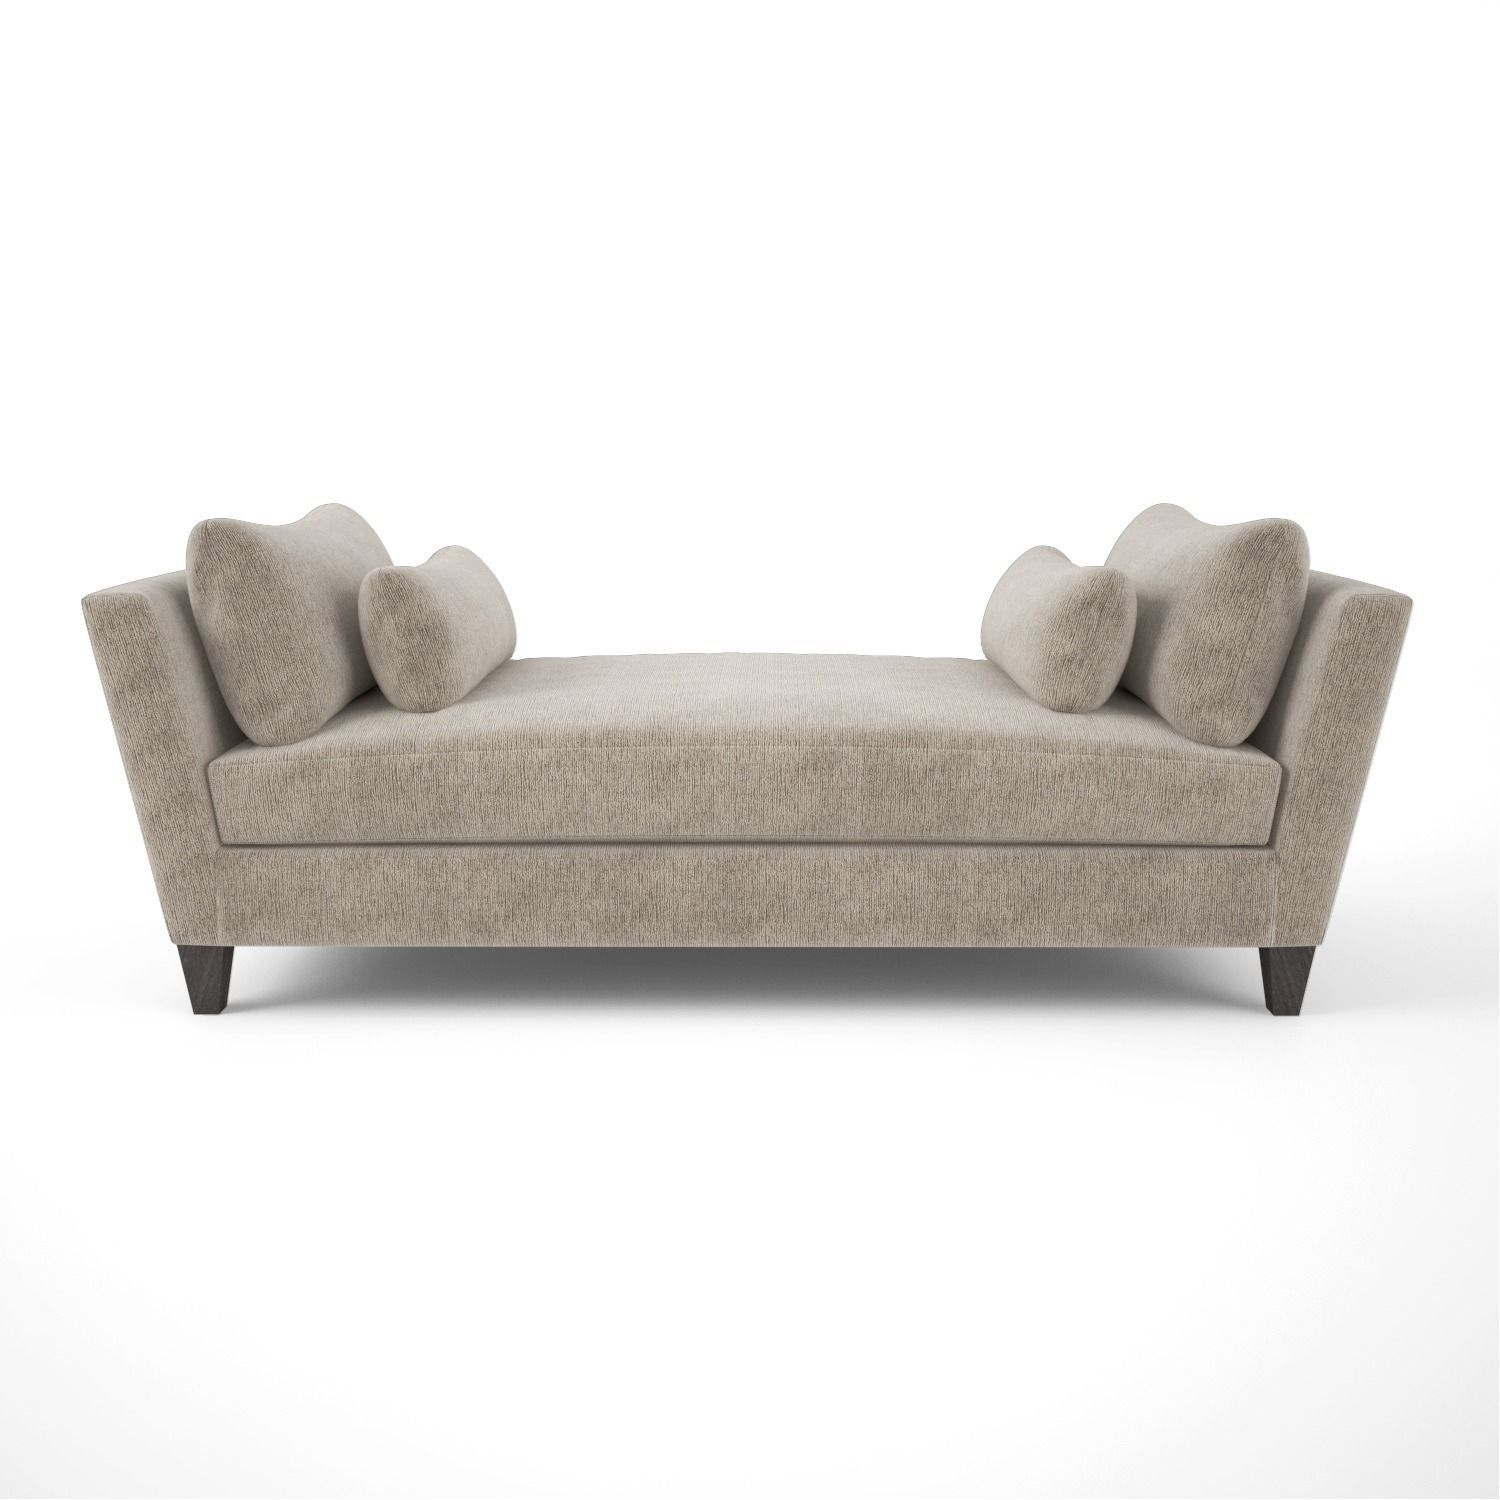 Crate and Barrel Marlowe Daybed Sofa 3D model | CGTrader